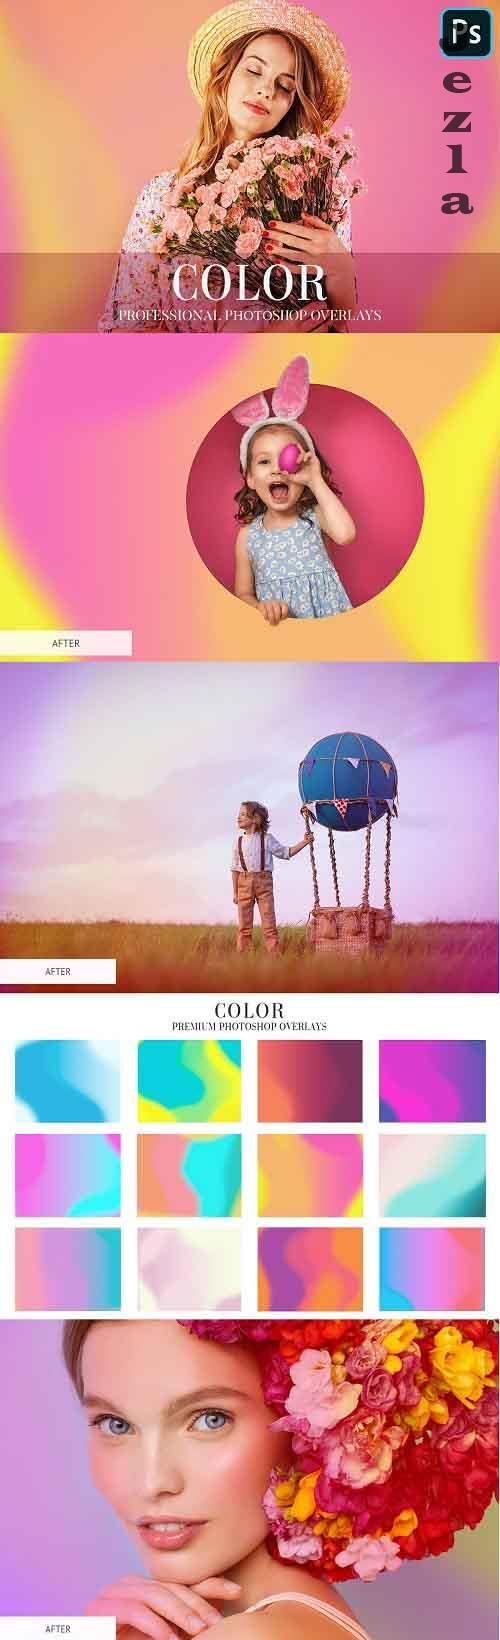 CreativeMarket - Color Overlays Photoshop 4935270